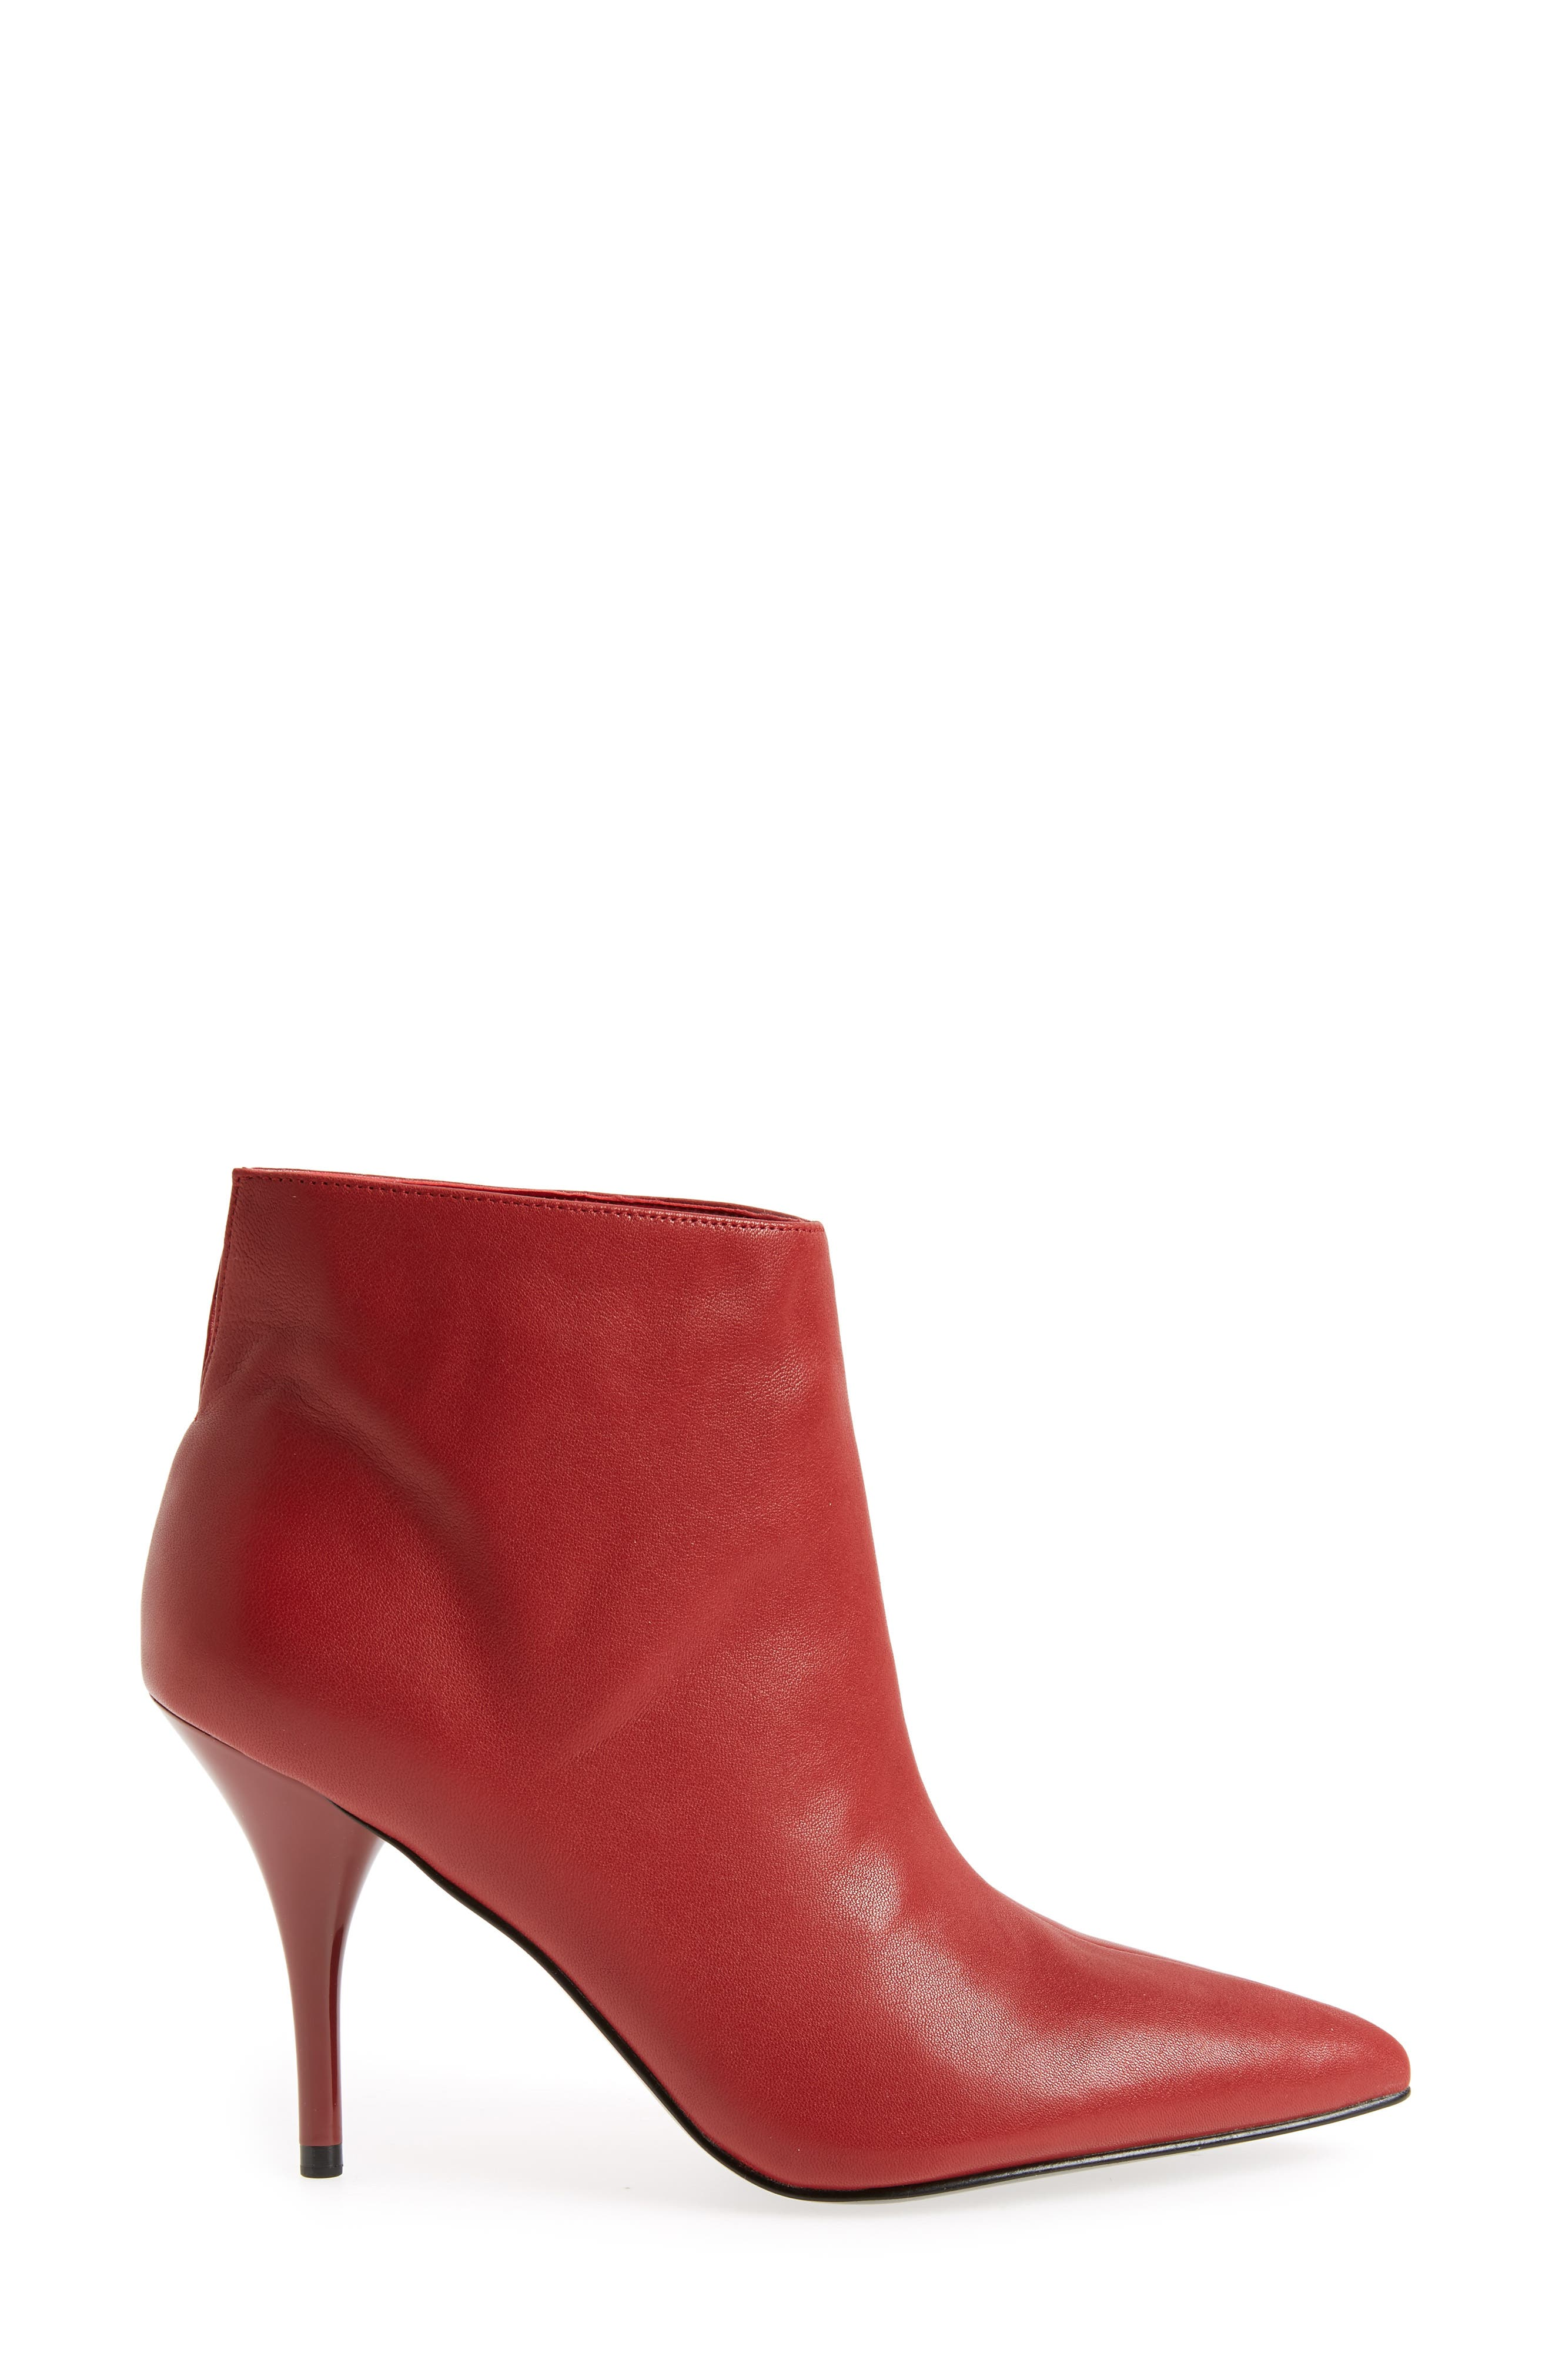 MARC FISHER LTD, Fenet Pointy Toe Bootie, Alternate thumbnail 3, color, RED LEATHER